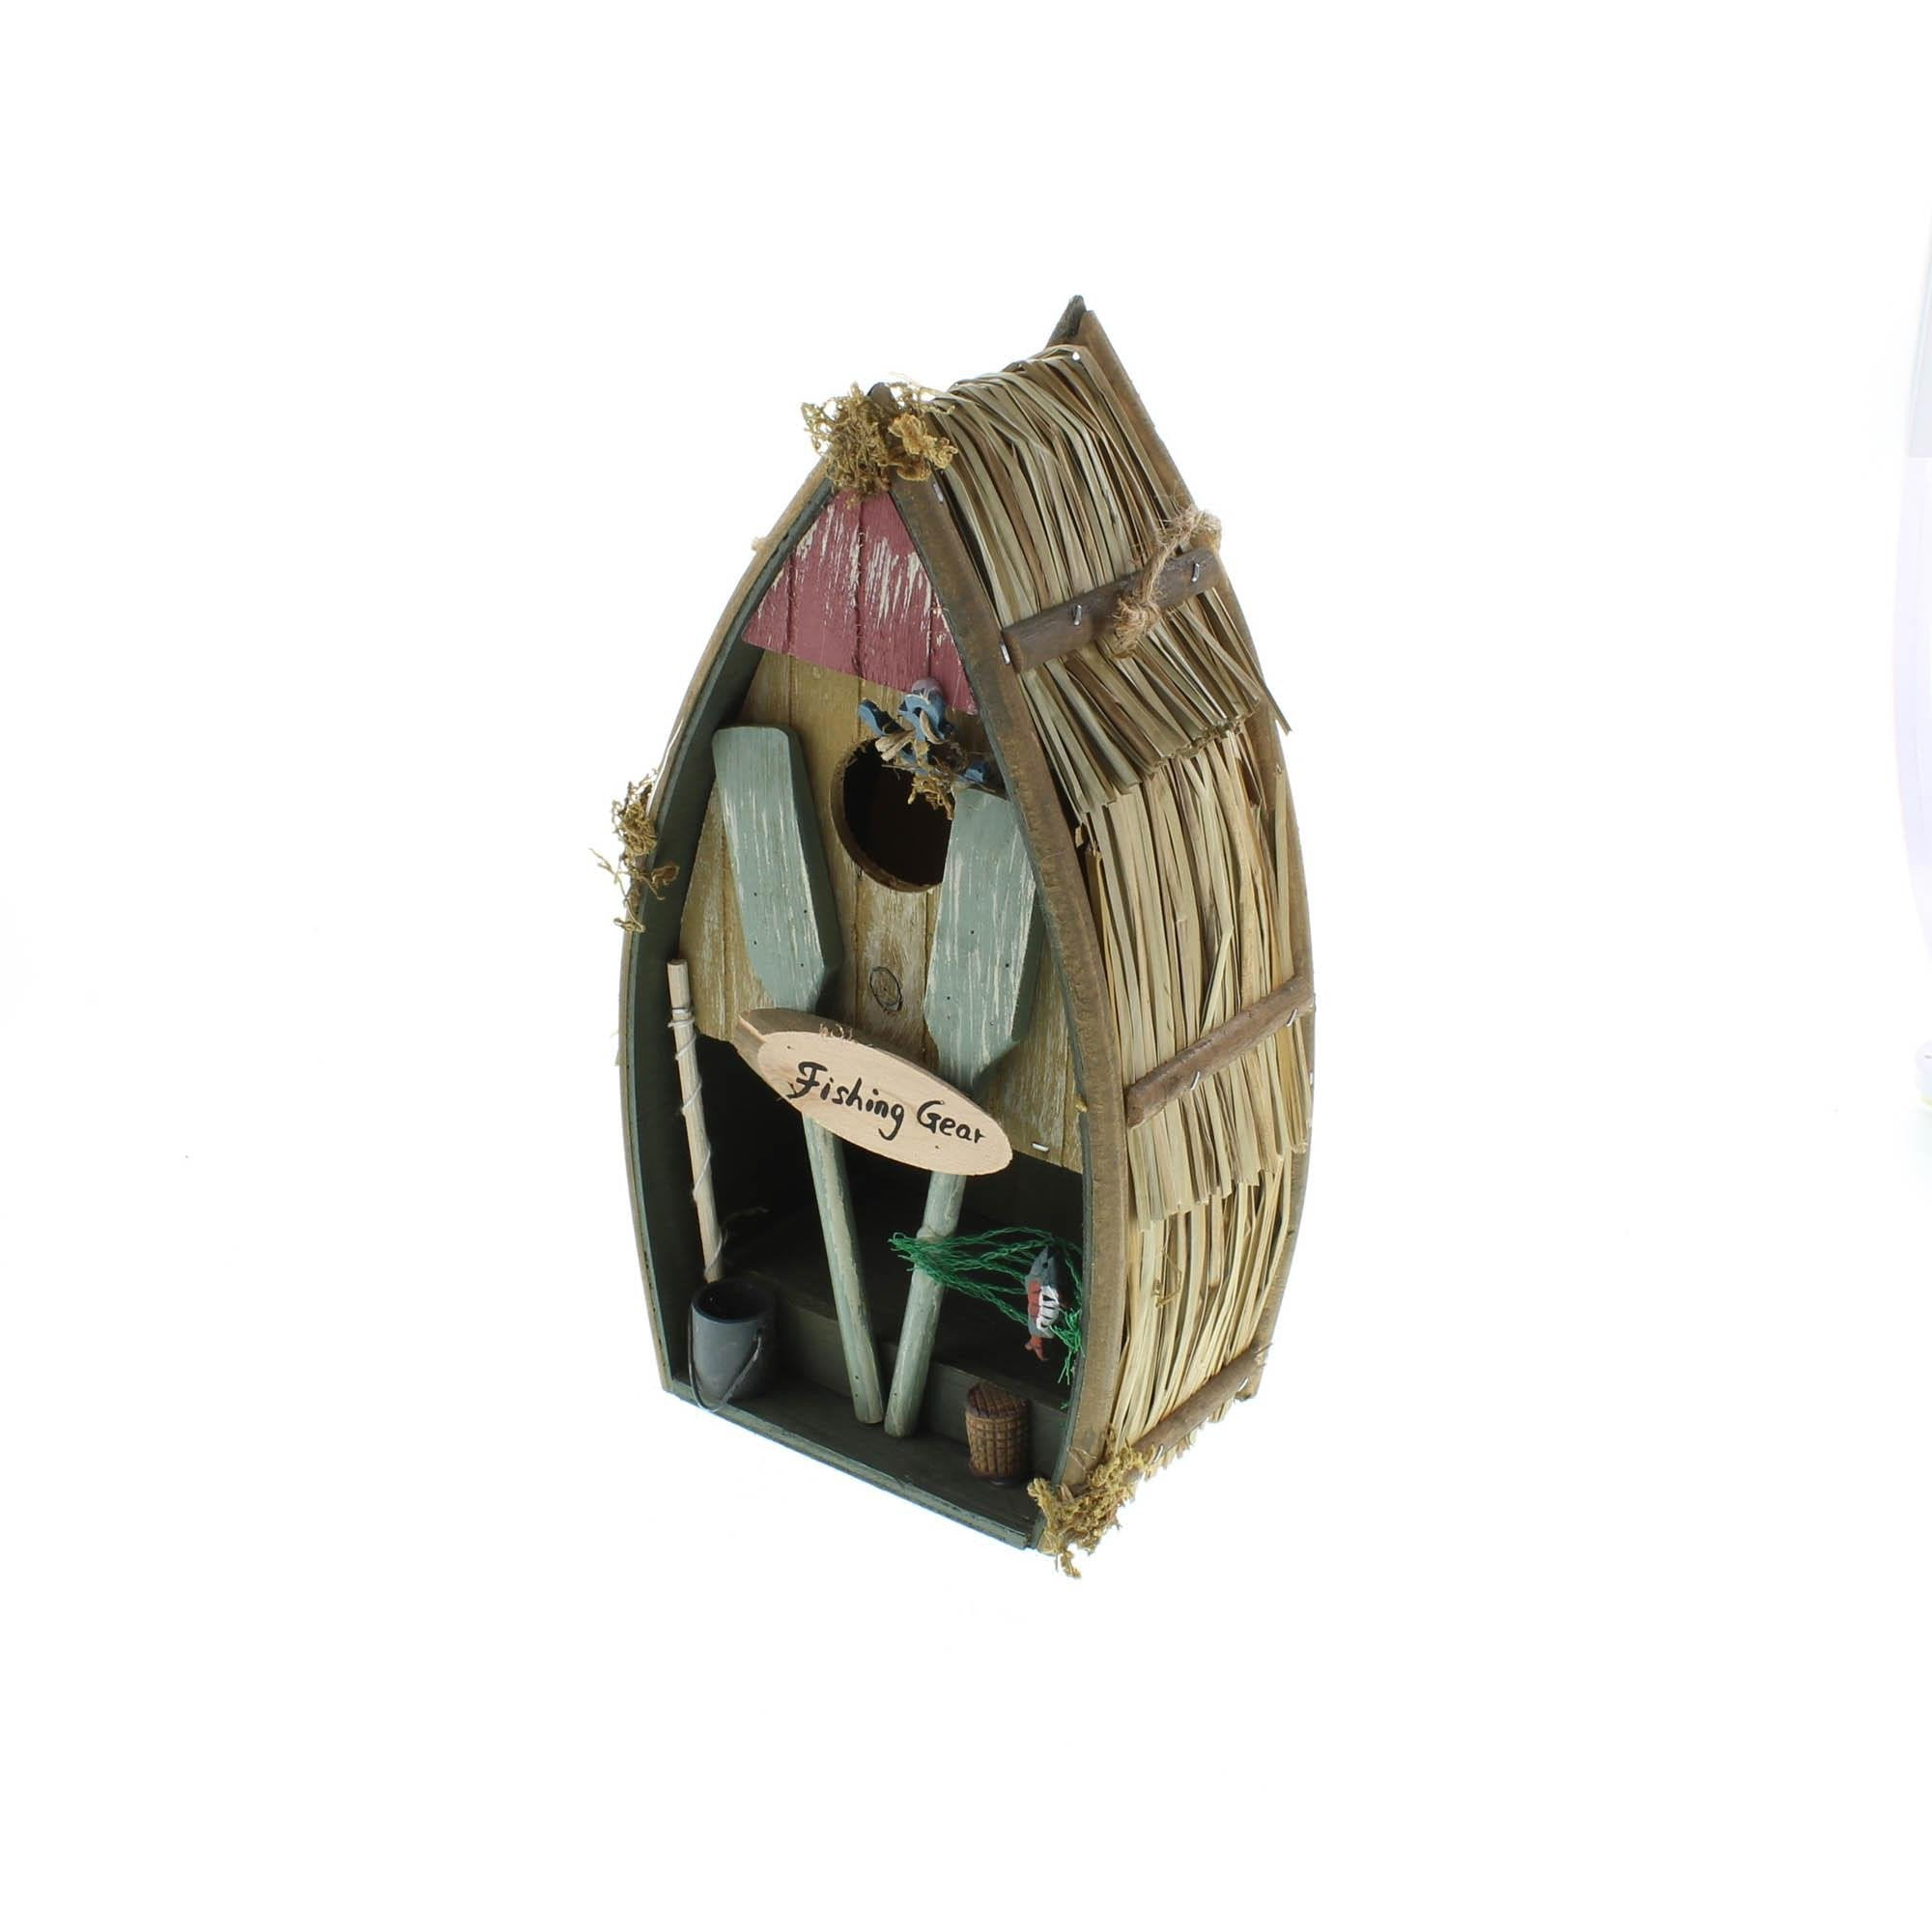 Birdhouse Fishermans Boat - My Home and Pet